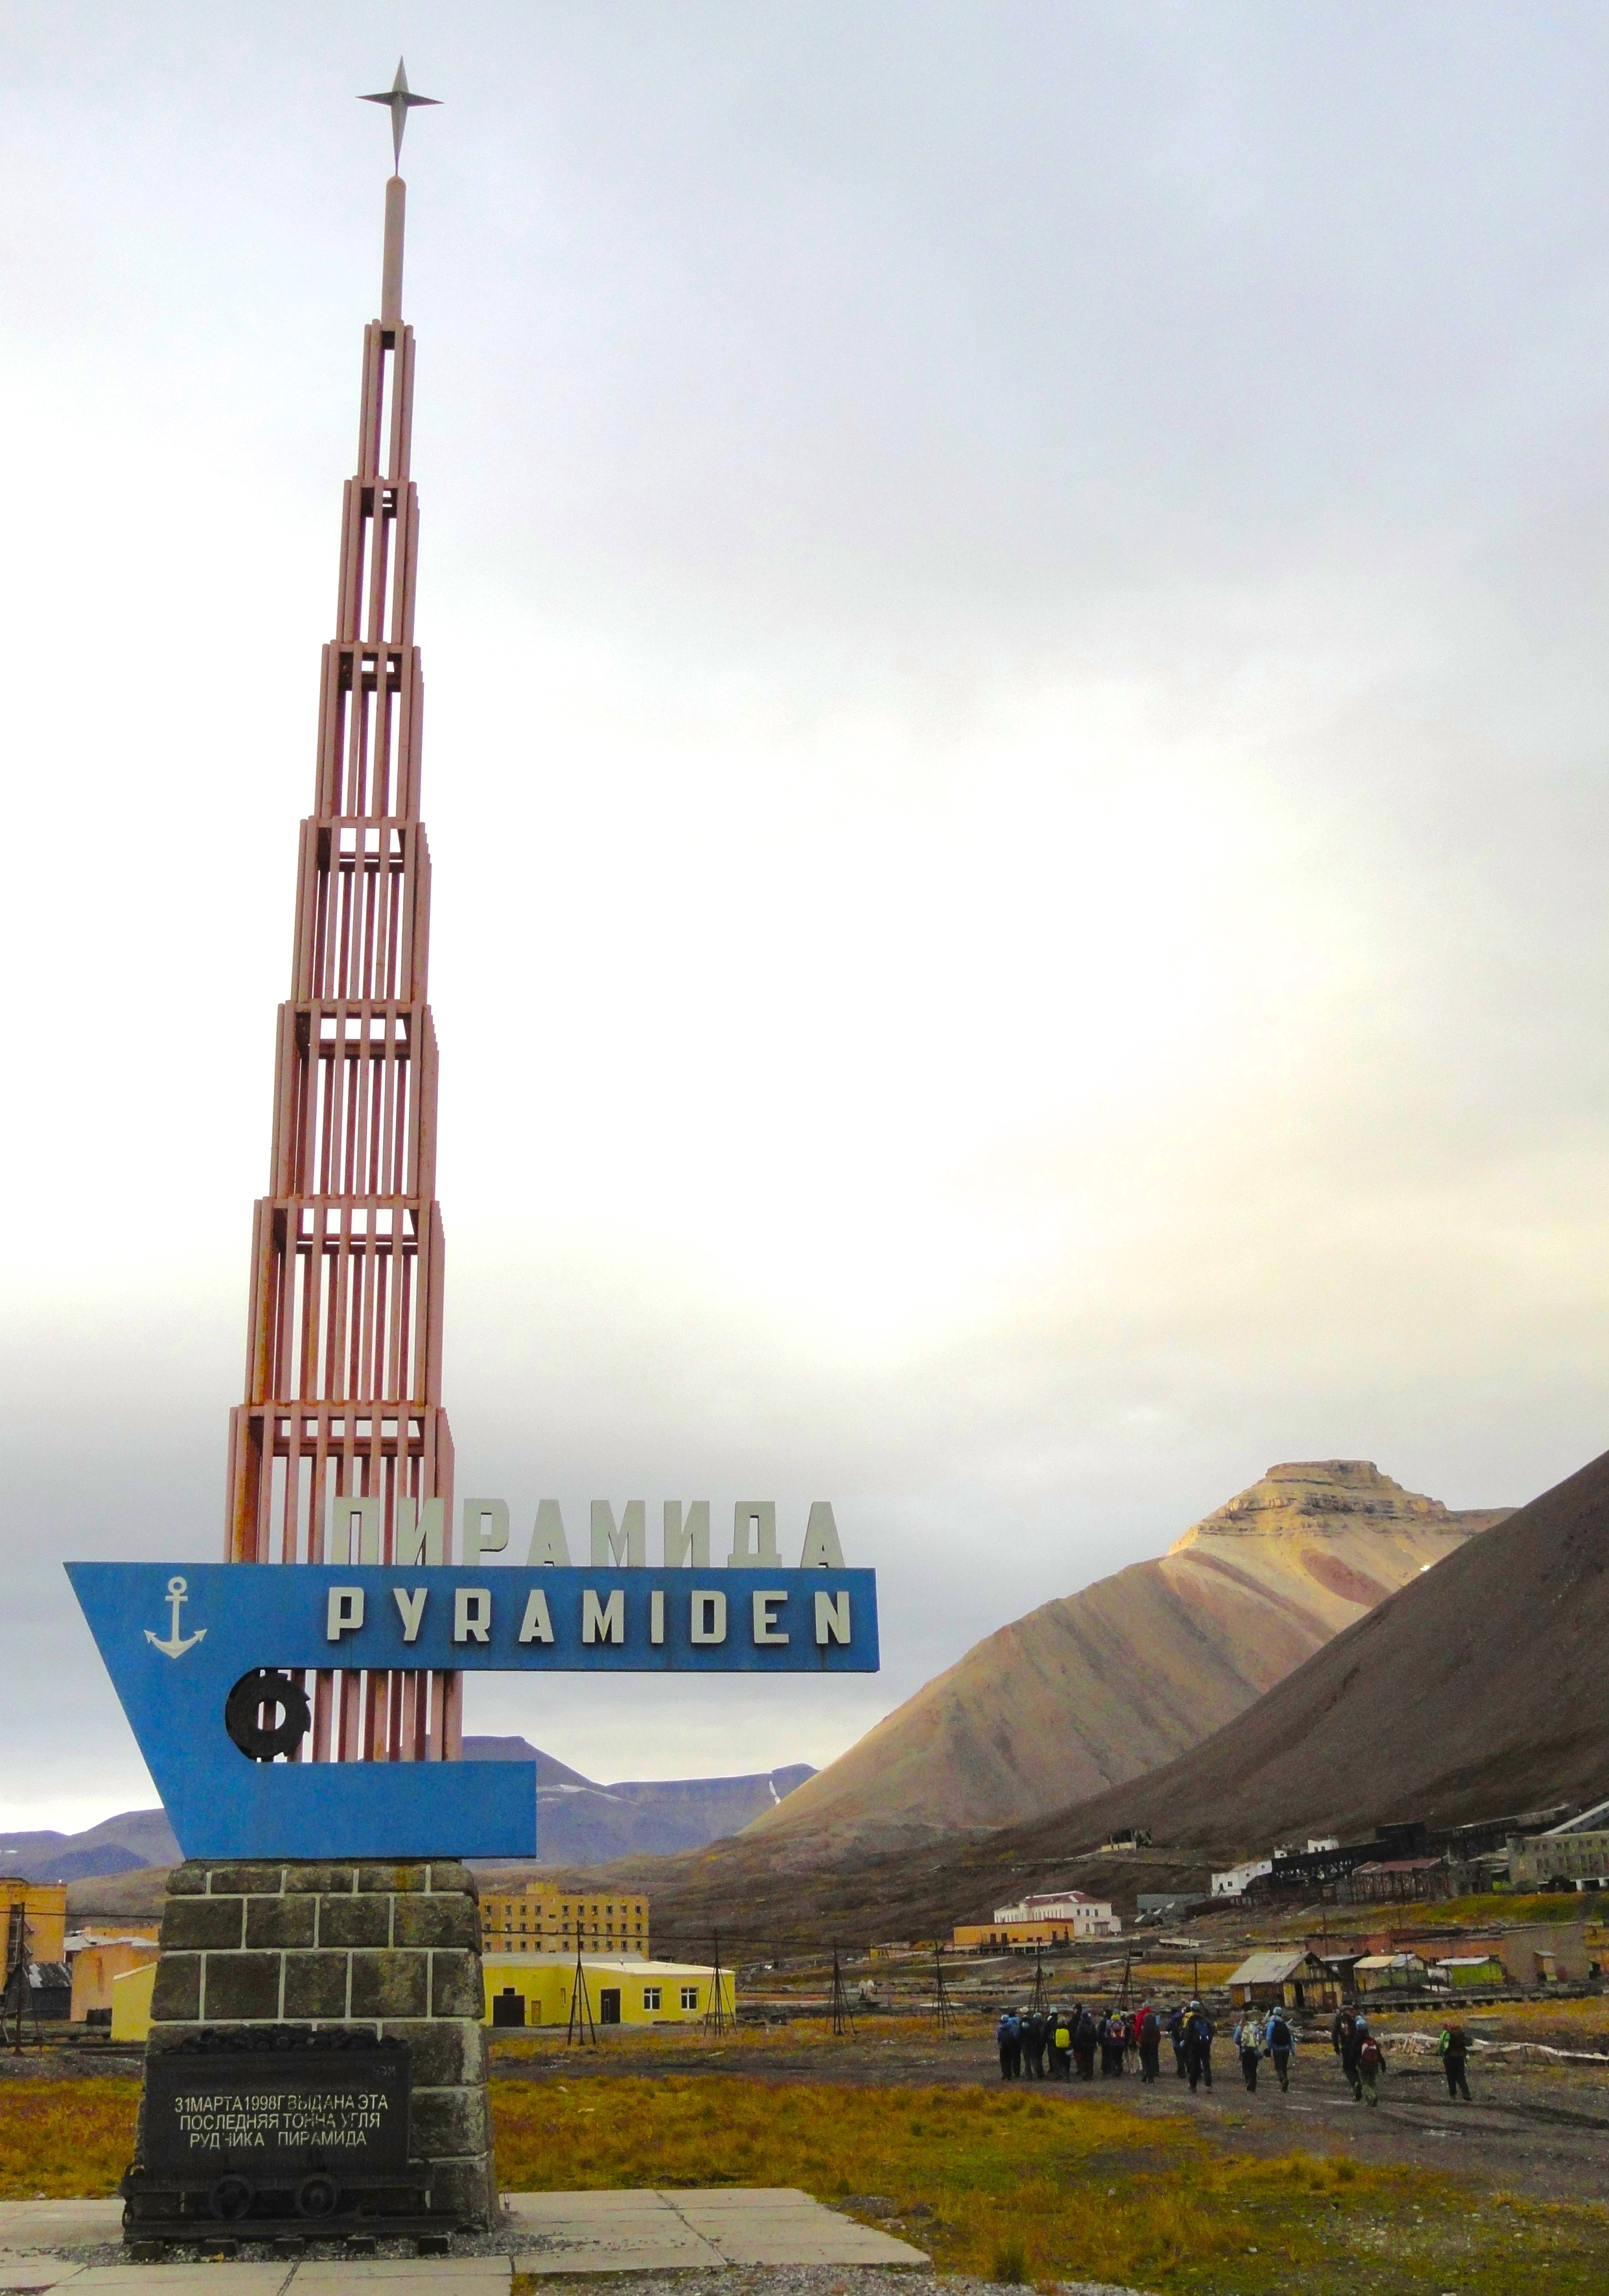 130115-pyramiden-welcome-sign